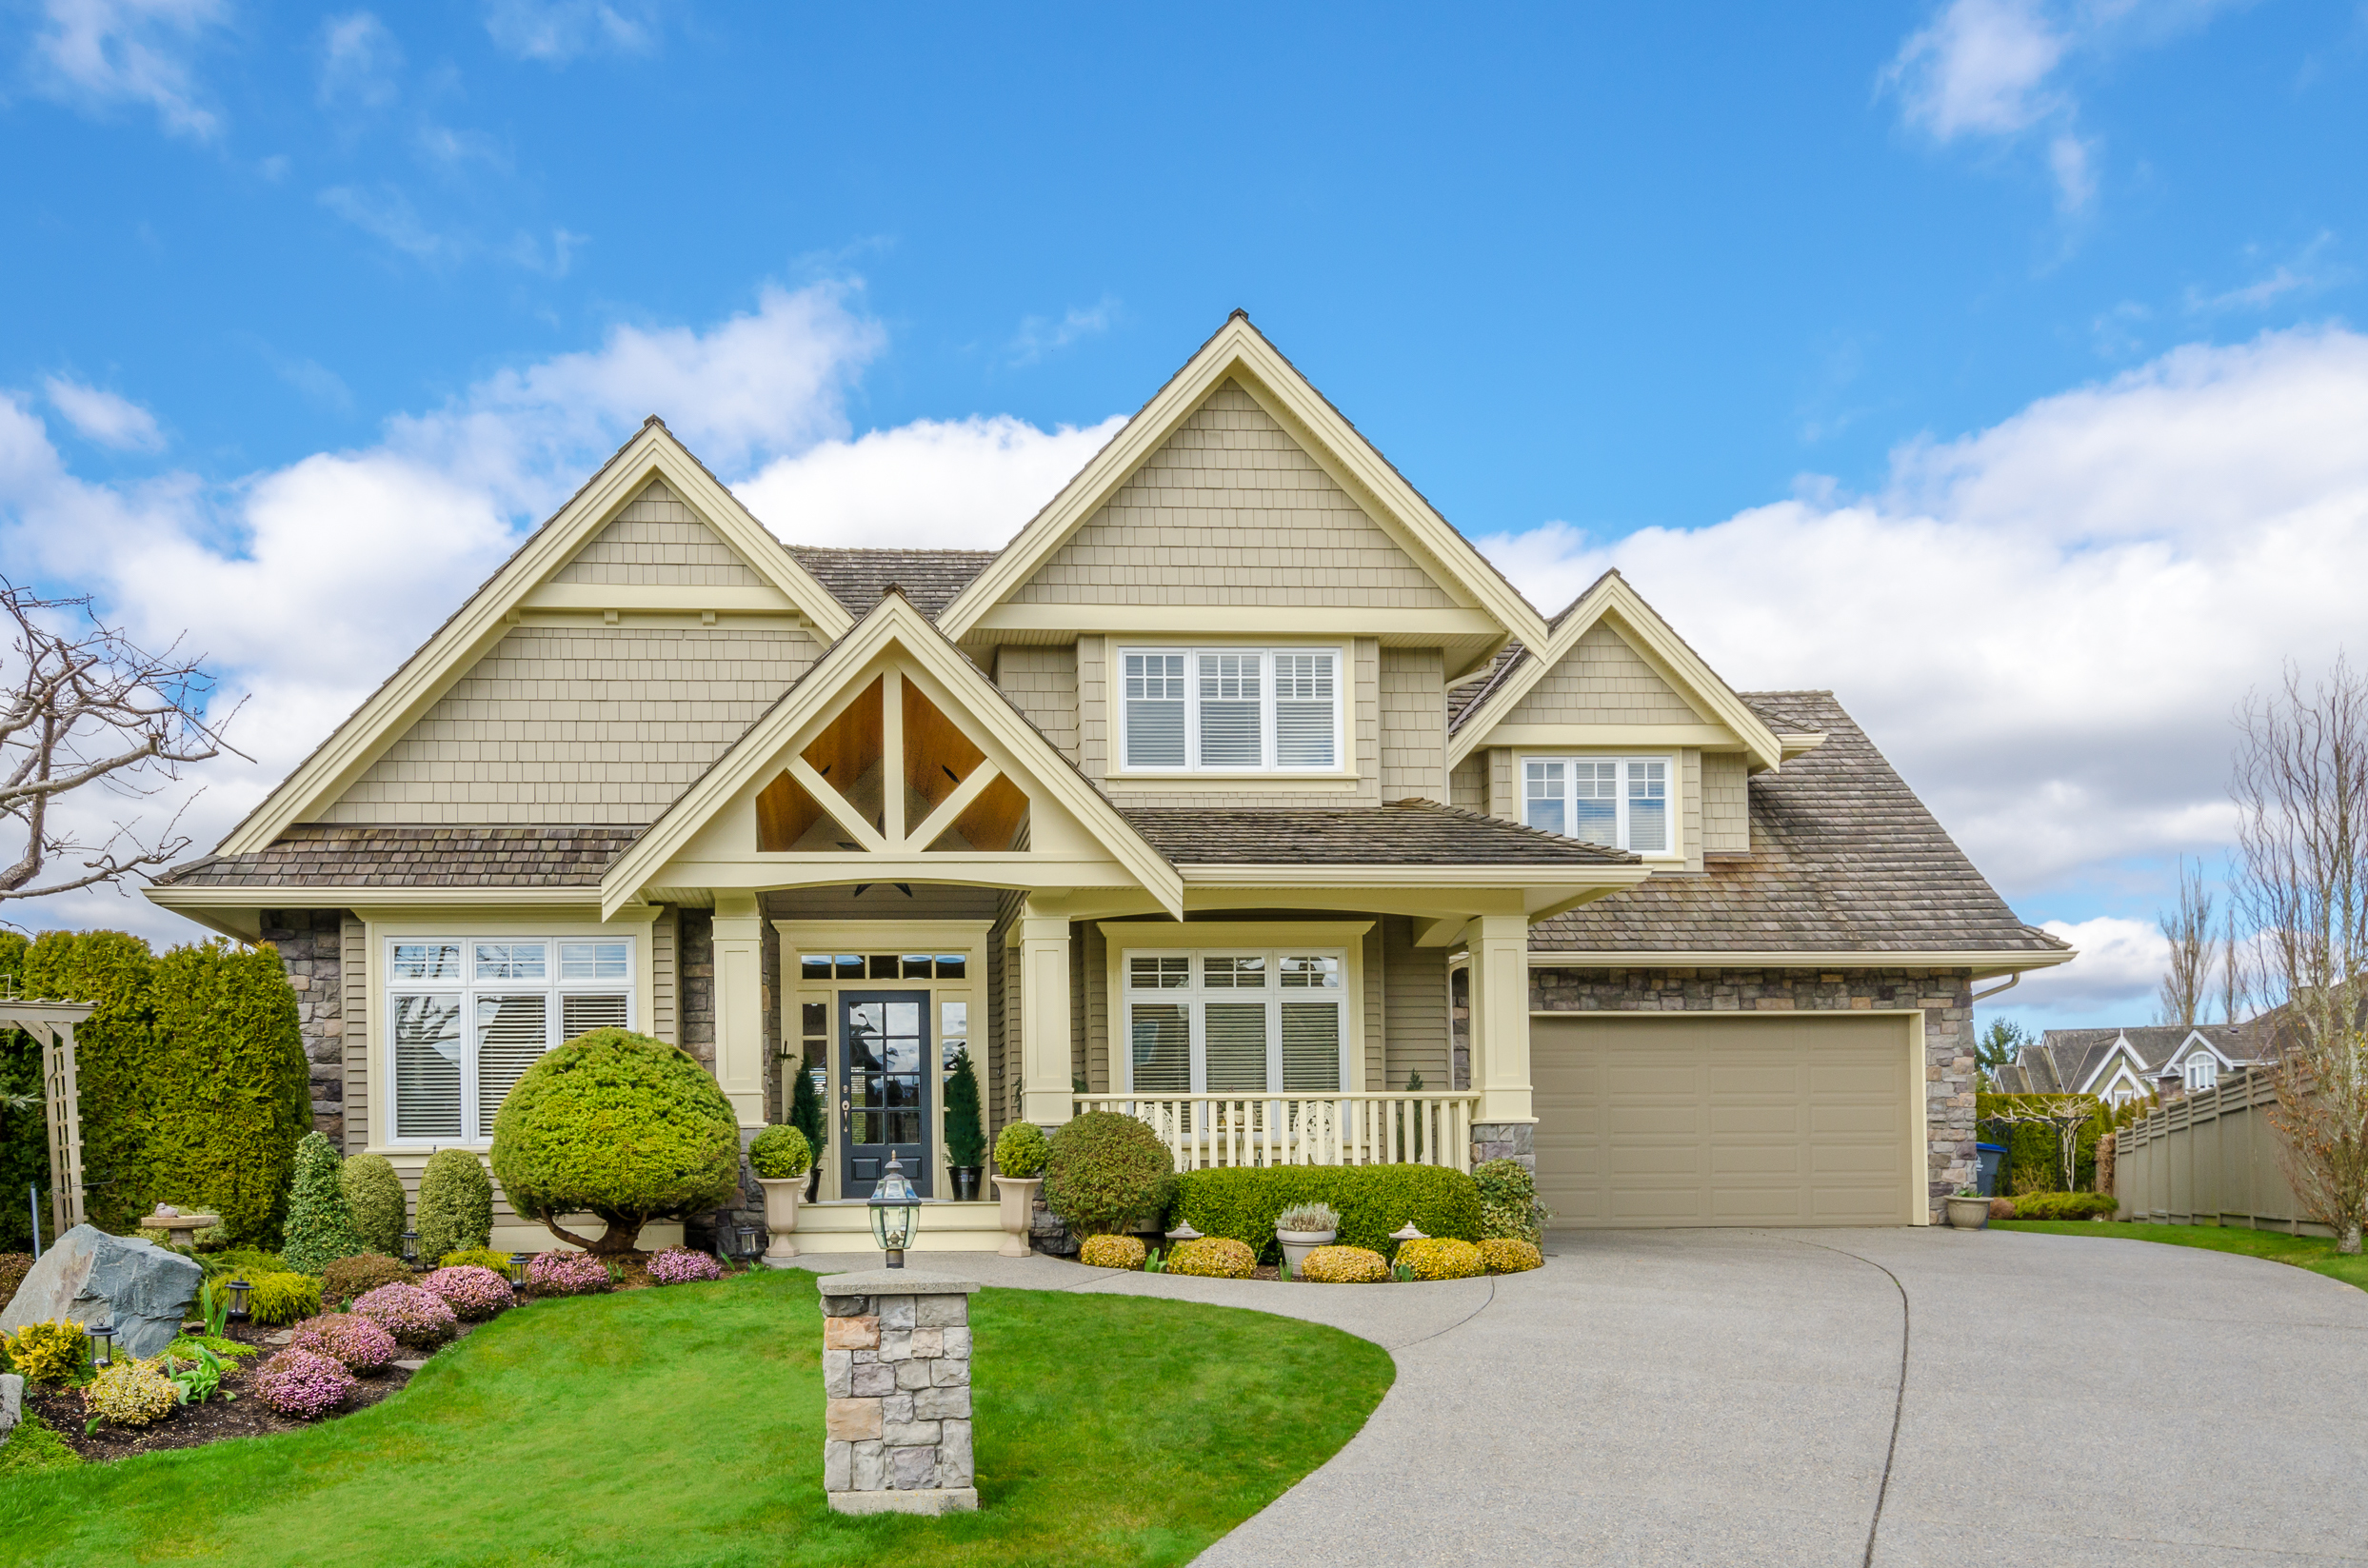 Luxury House With A Two Car Garage And Beautiful Landscaping On